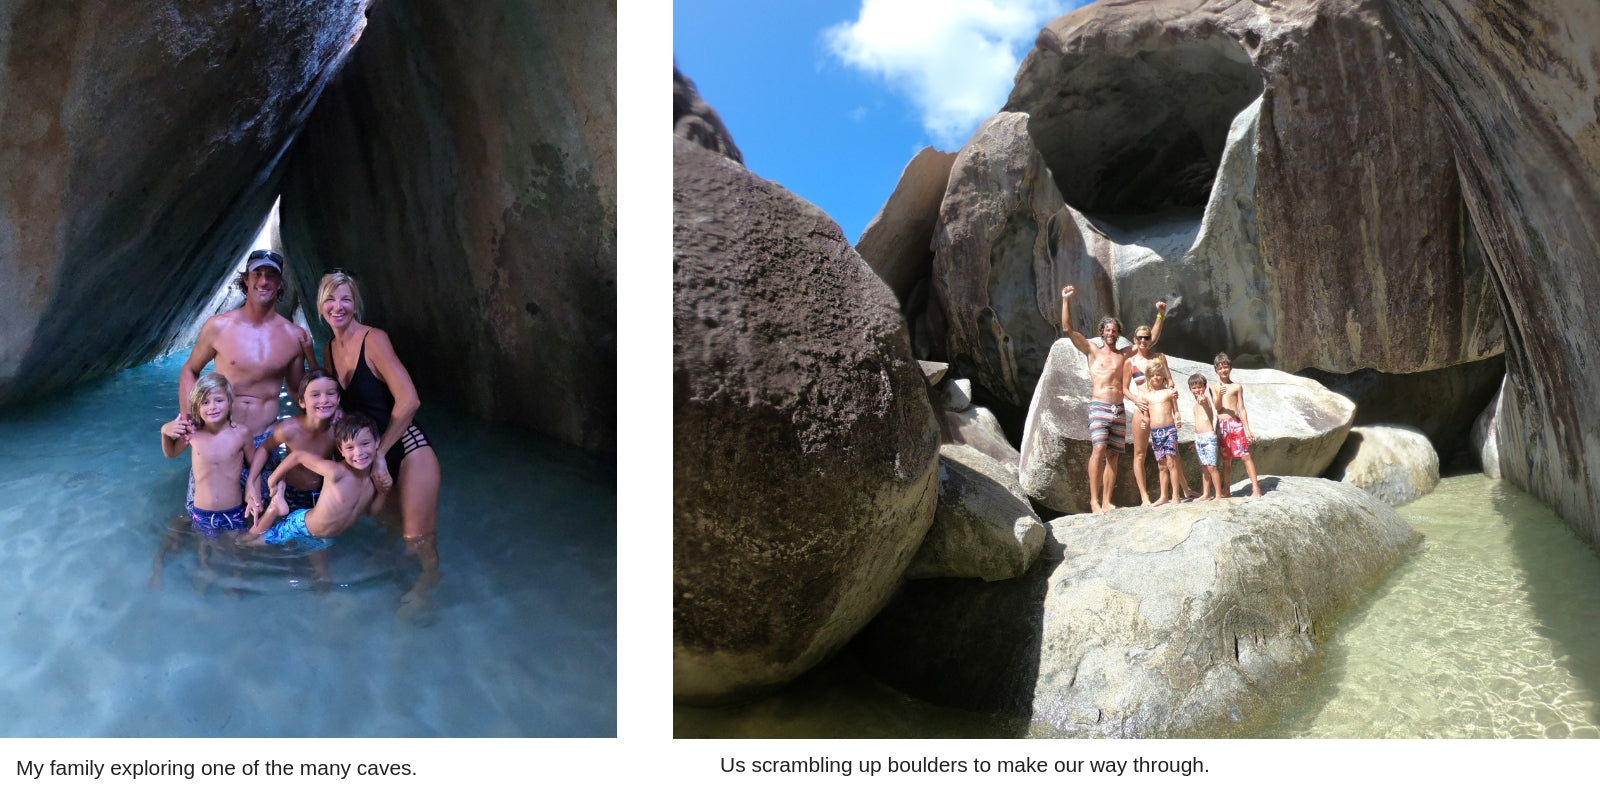 My family at the Baths Virgin Gorda, BVIs